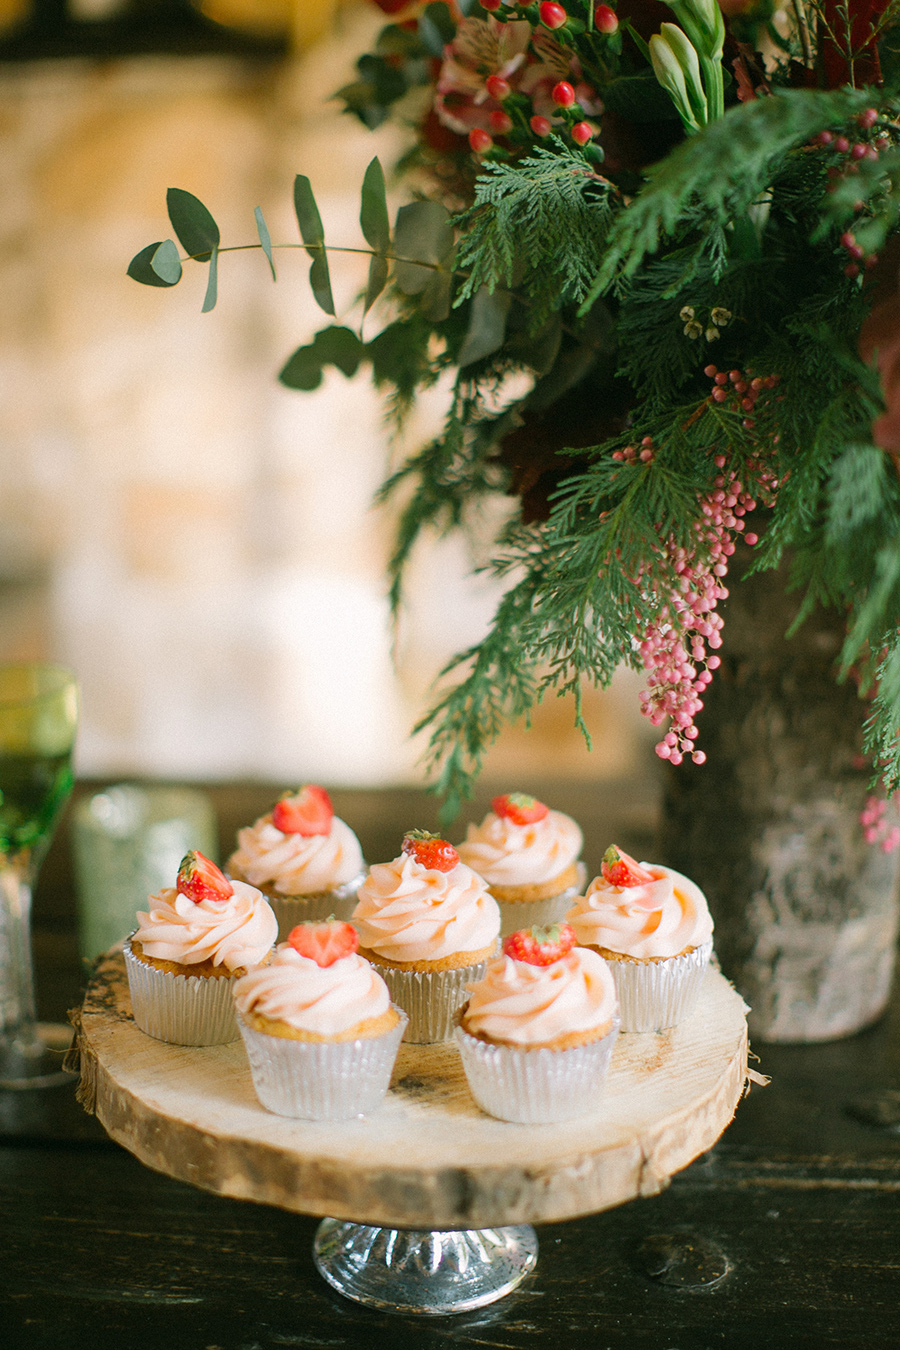 Boho Chic Inspired Wedding - Strawberry Topped Cupcakes / styled shoot coordinated by Love 4 Wed / photo by Anna Roussos Photography